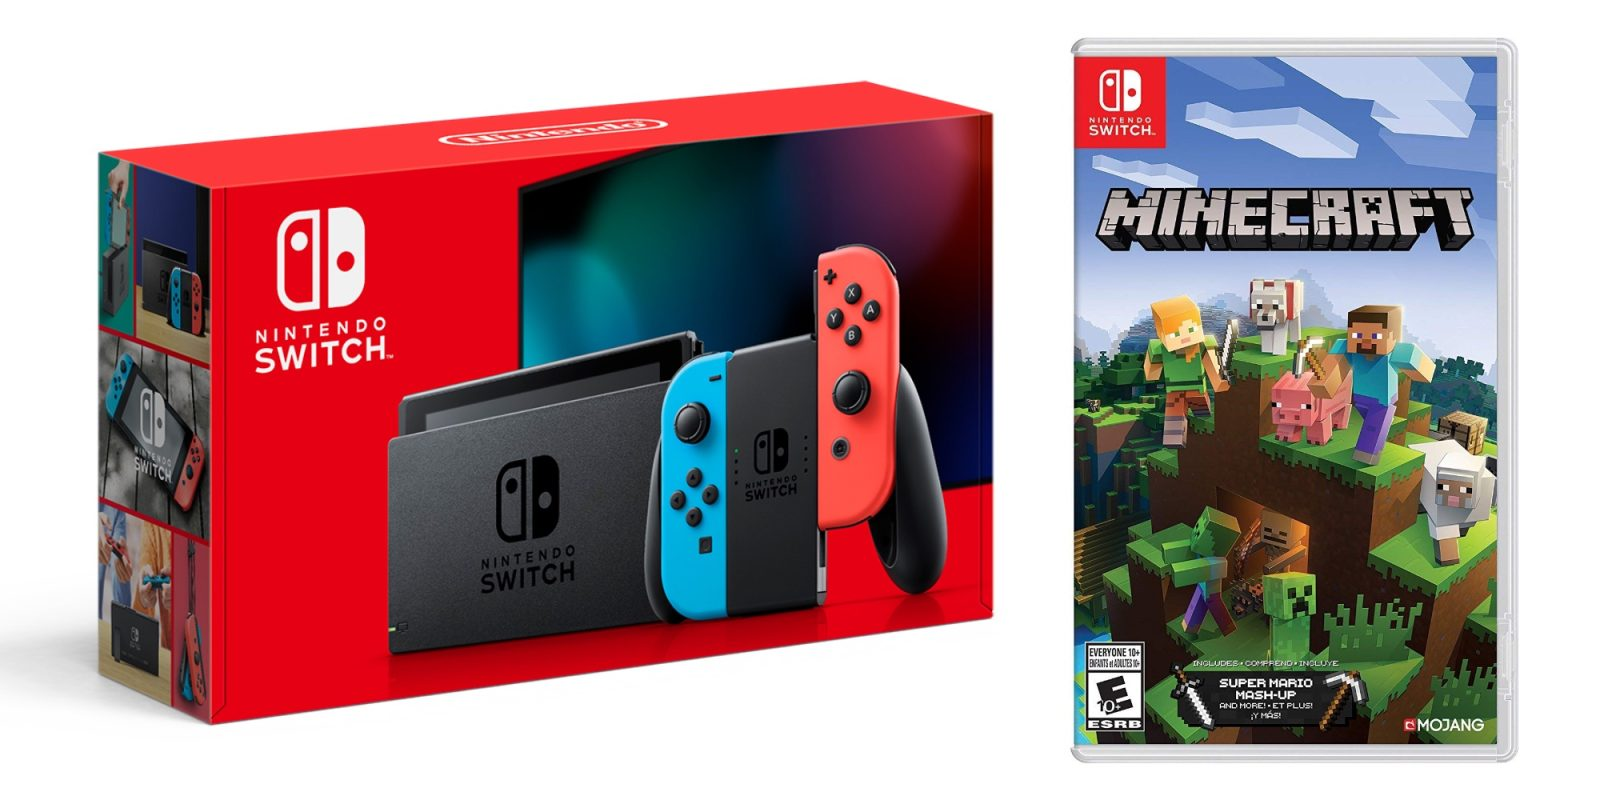 Walmart's enhanced Nintendo Switch bundle bests the official Black Friday deal